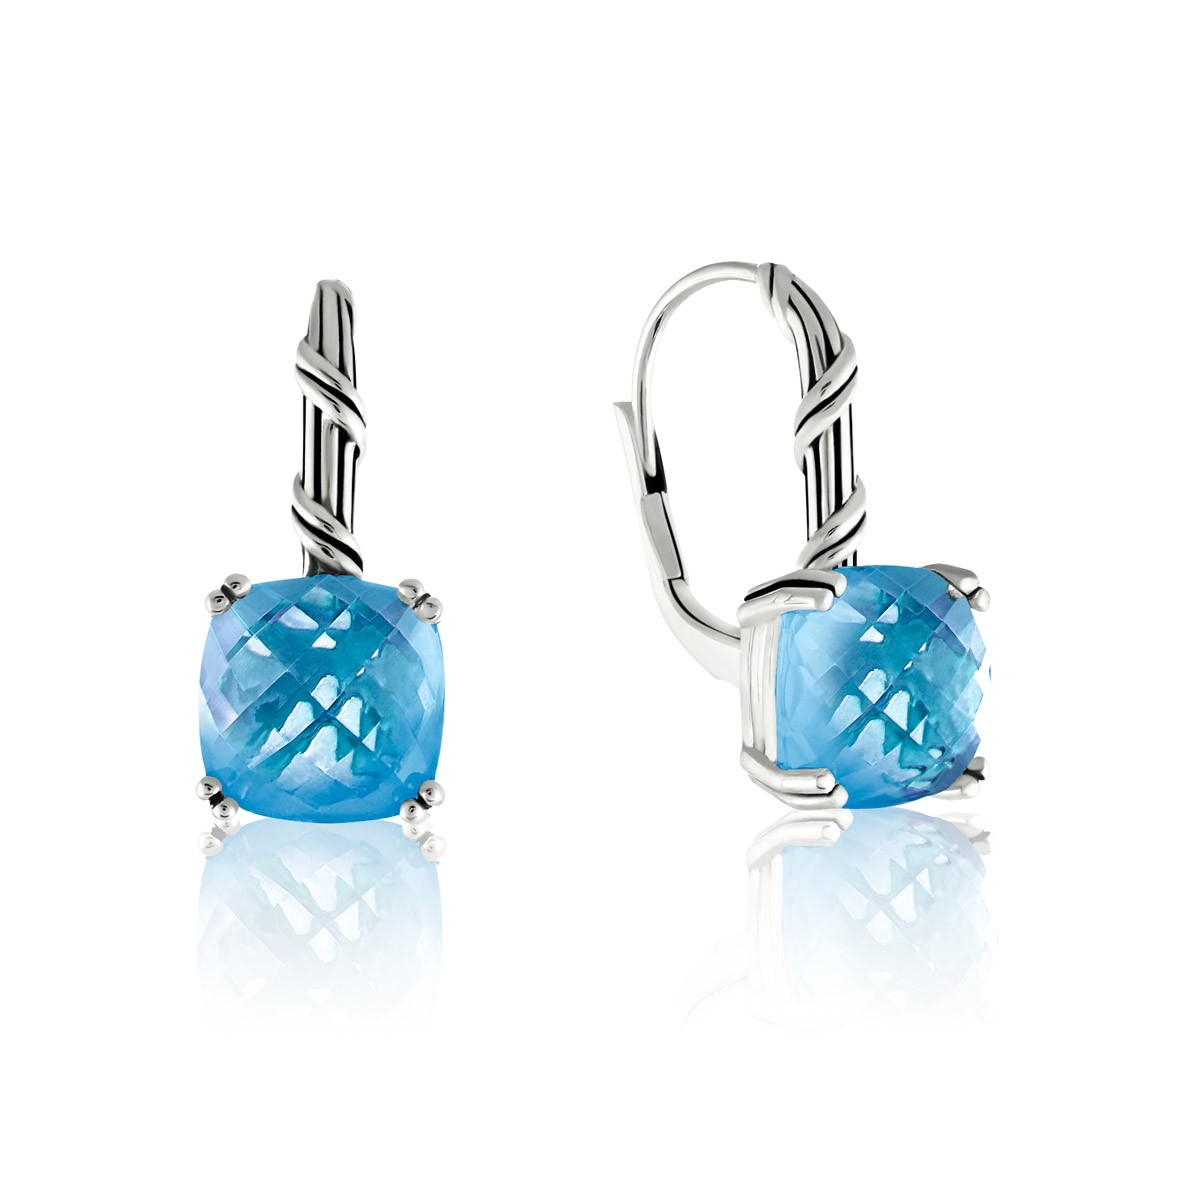 Fantasies Blue Topaz Drop Earrings in sterling silver